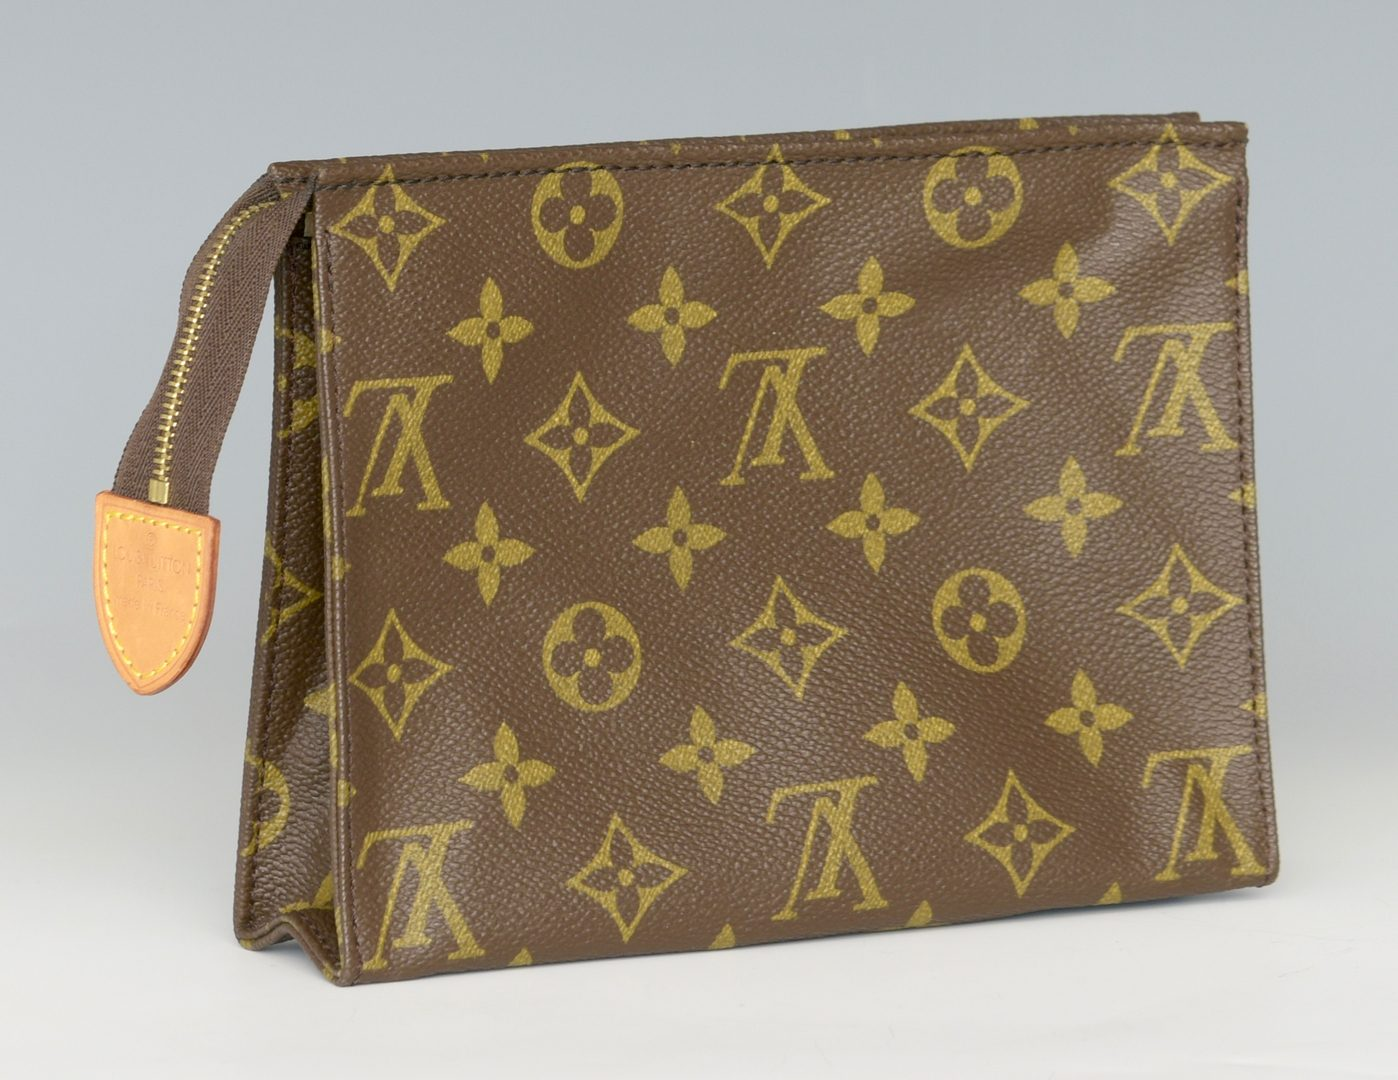 Lot 925: Louis Vuitton Monogram Olympe Bag & Toilette Pouch